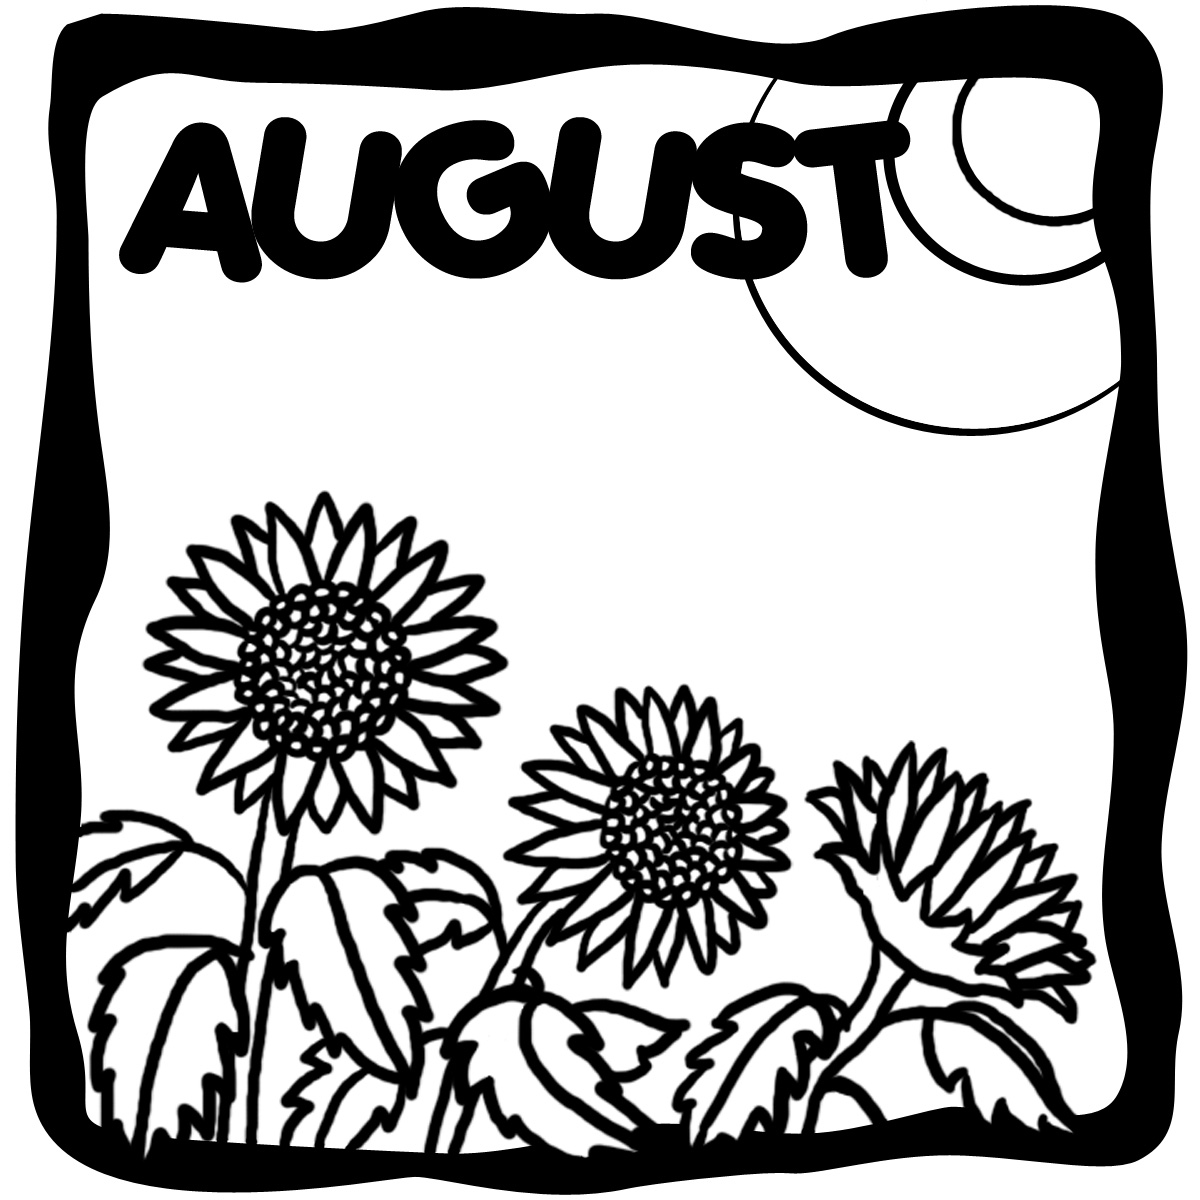 August clipart 7.